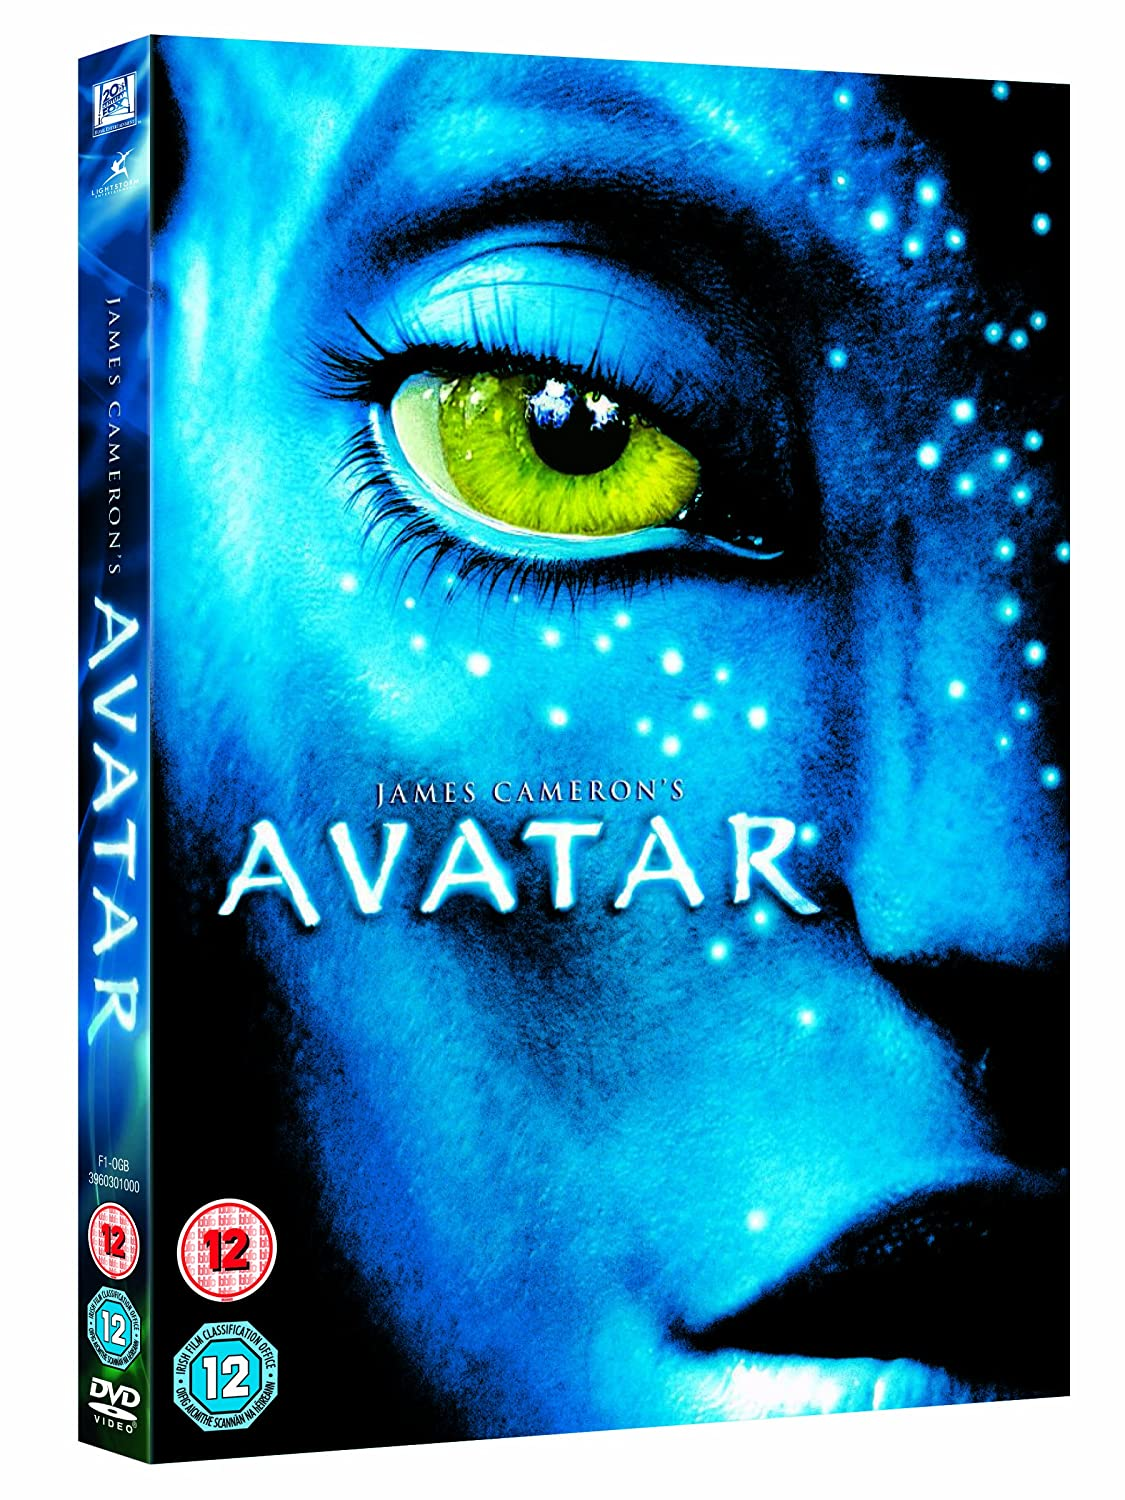 avatar dvd amazon co uk sam worthington sigourney weaver avatar dvd amazon co uk sam worthington sigourney weaver michelle rodriguez zoe saldana giovanni ribisi james cameron dvd blu ray